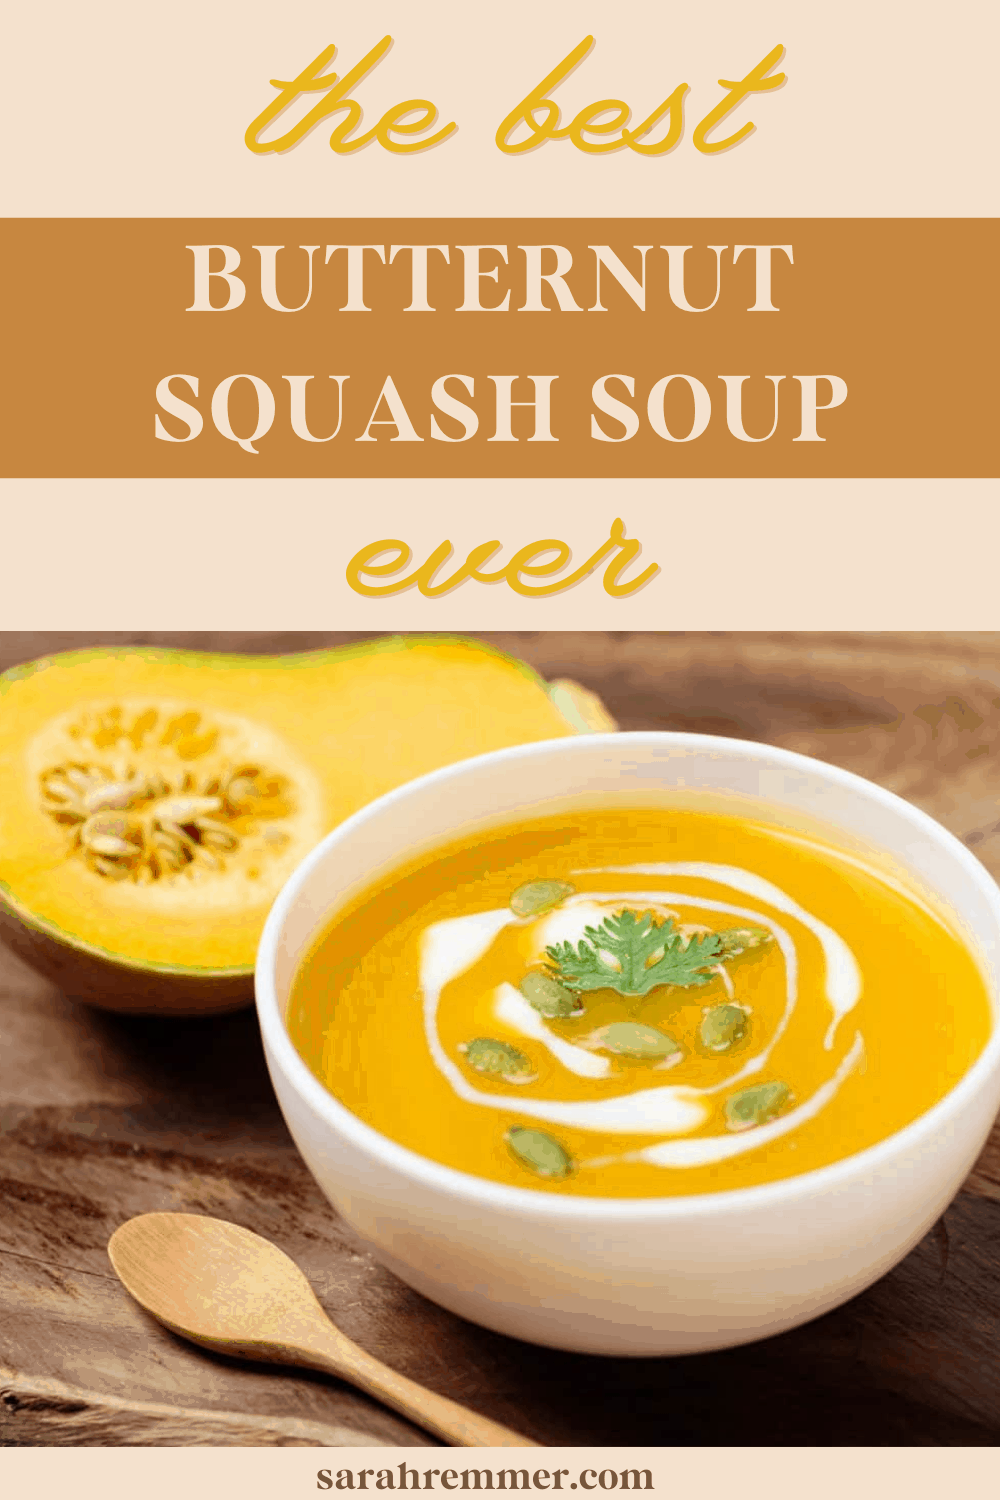 Soups are my favourite way to ensure that I get enough veggies throughout the winter months and this recipe is for the best butternut squash soup ever!